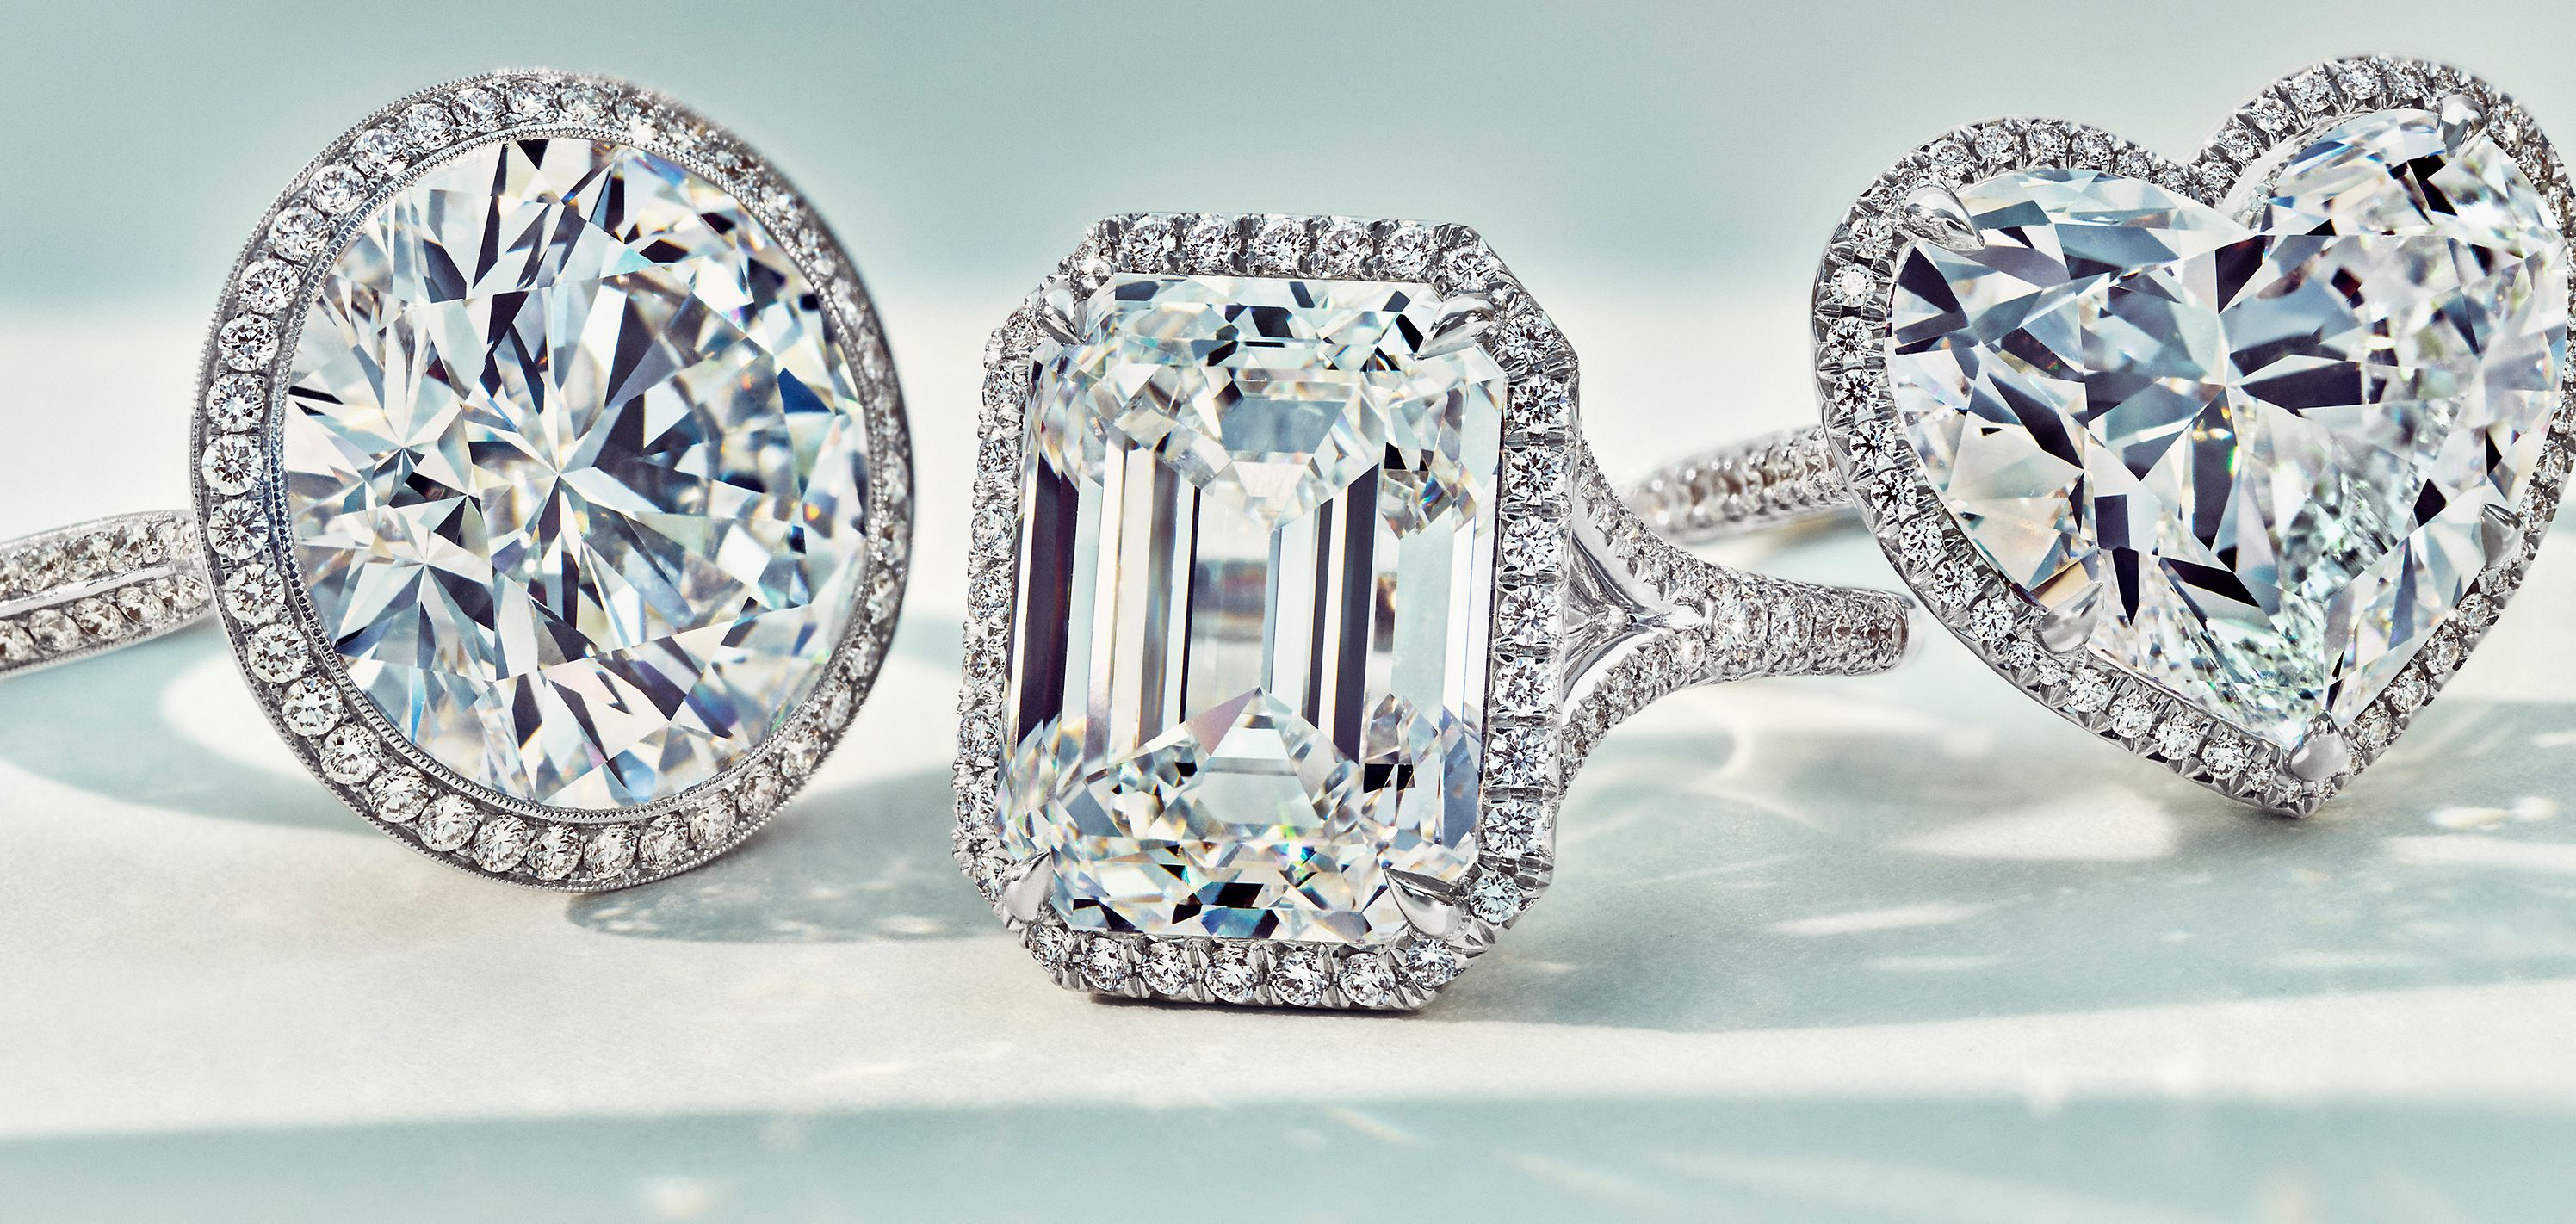 Grandes diamantes incolores da Tiffany & Co.